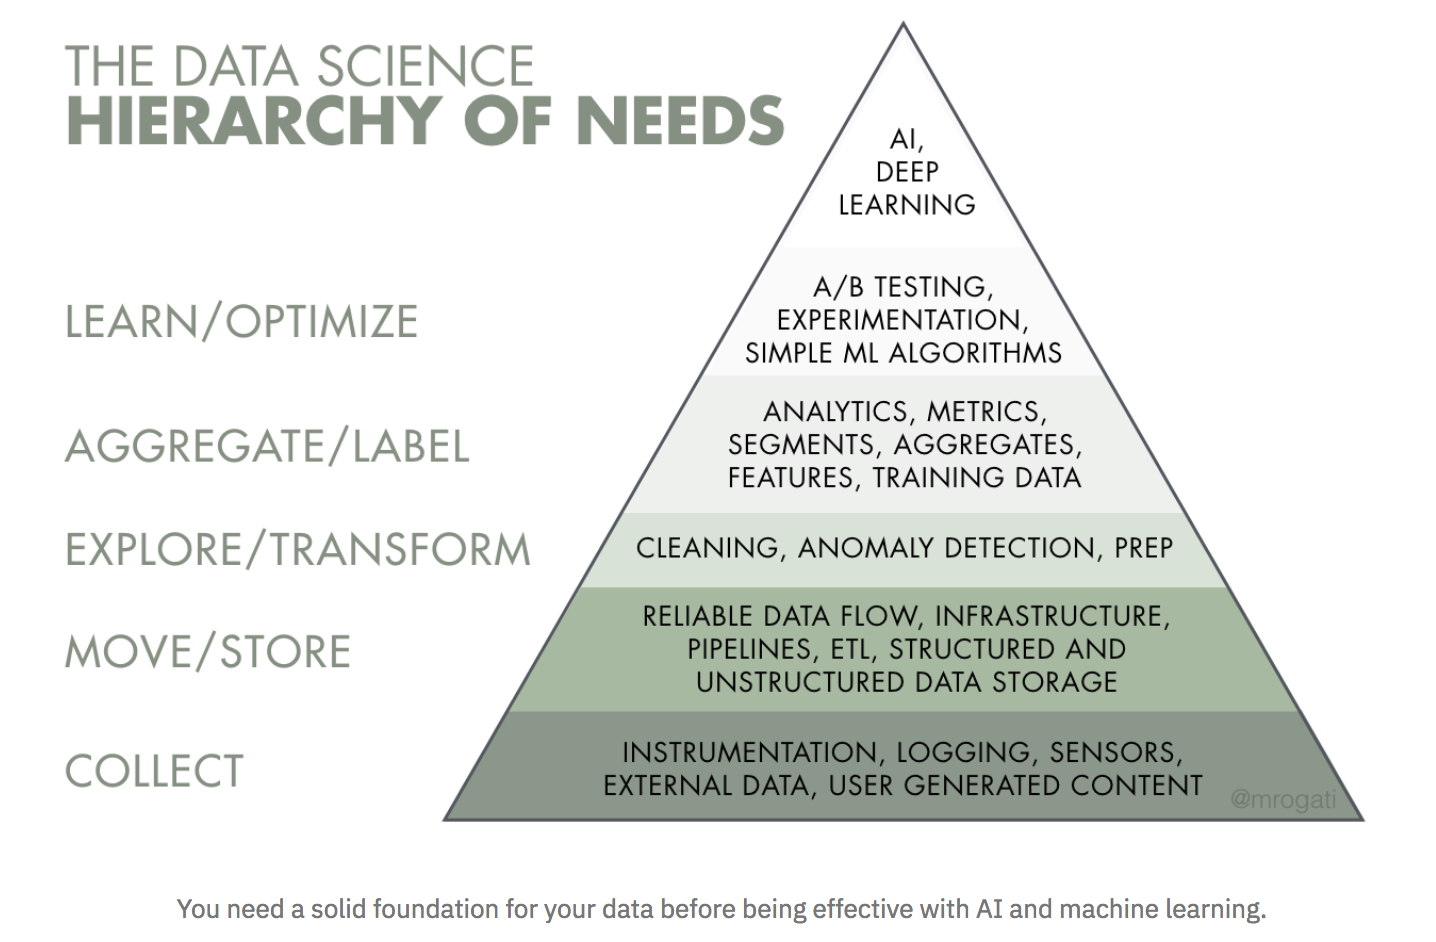 AI Hierarchy of Needs